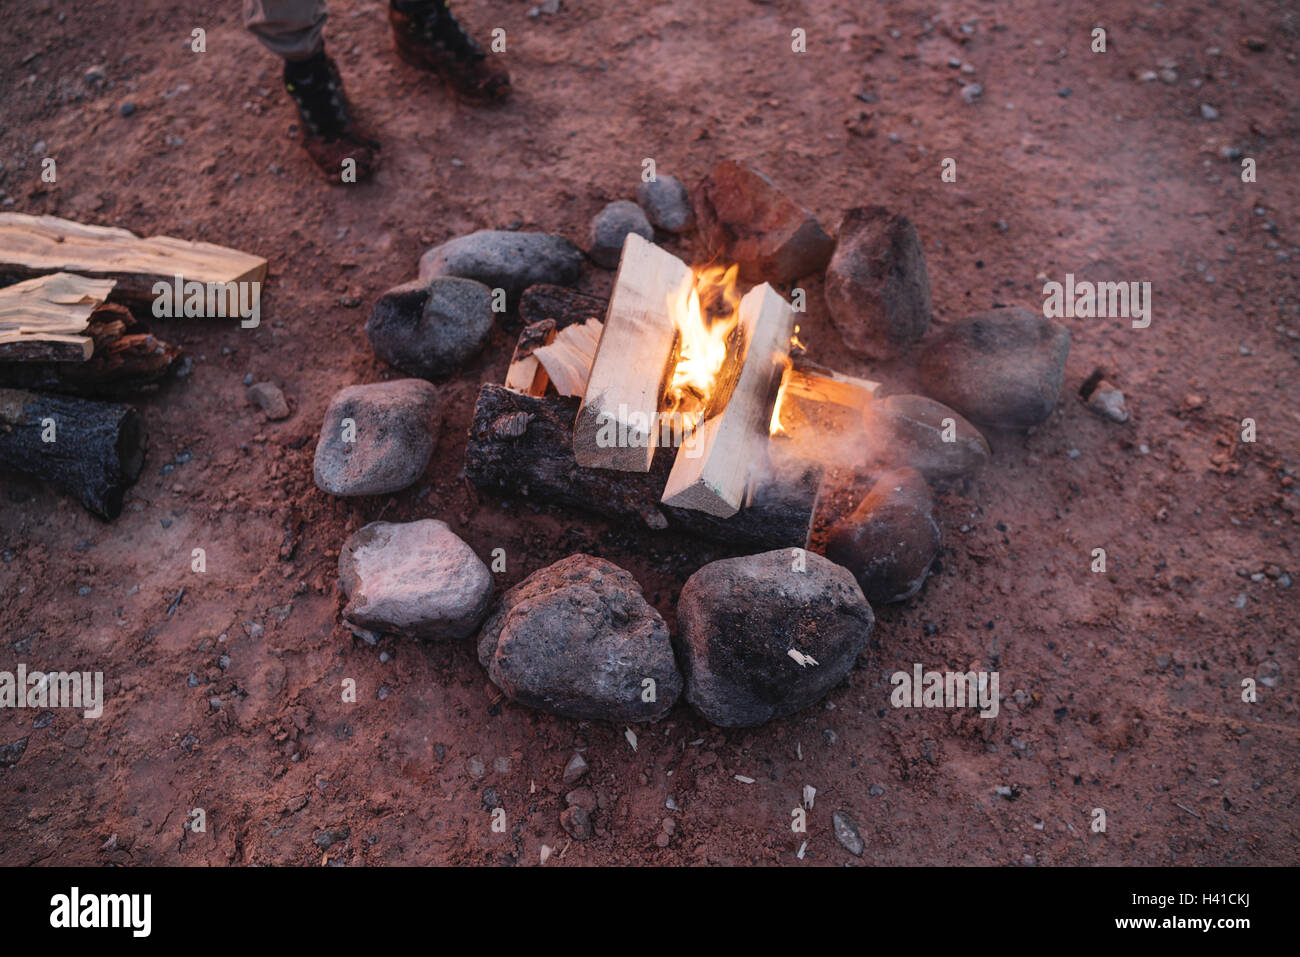 Burning firewood at a campsite in southern Utah - Stock Image